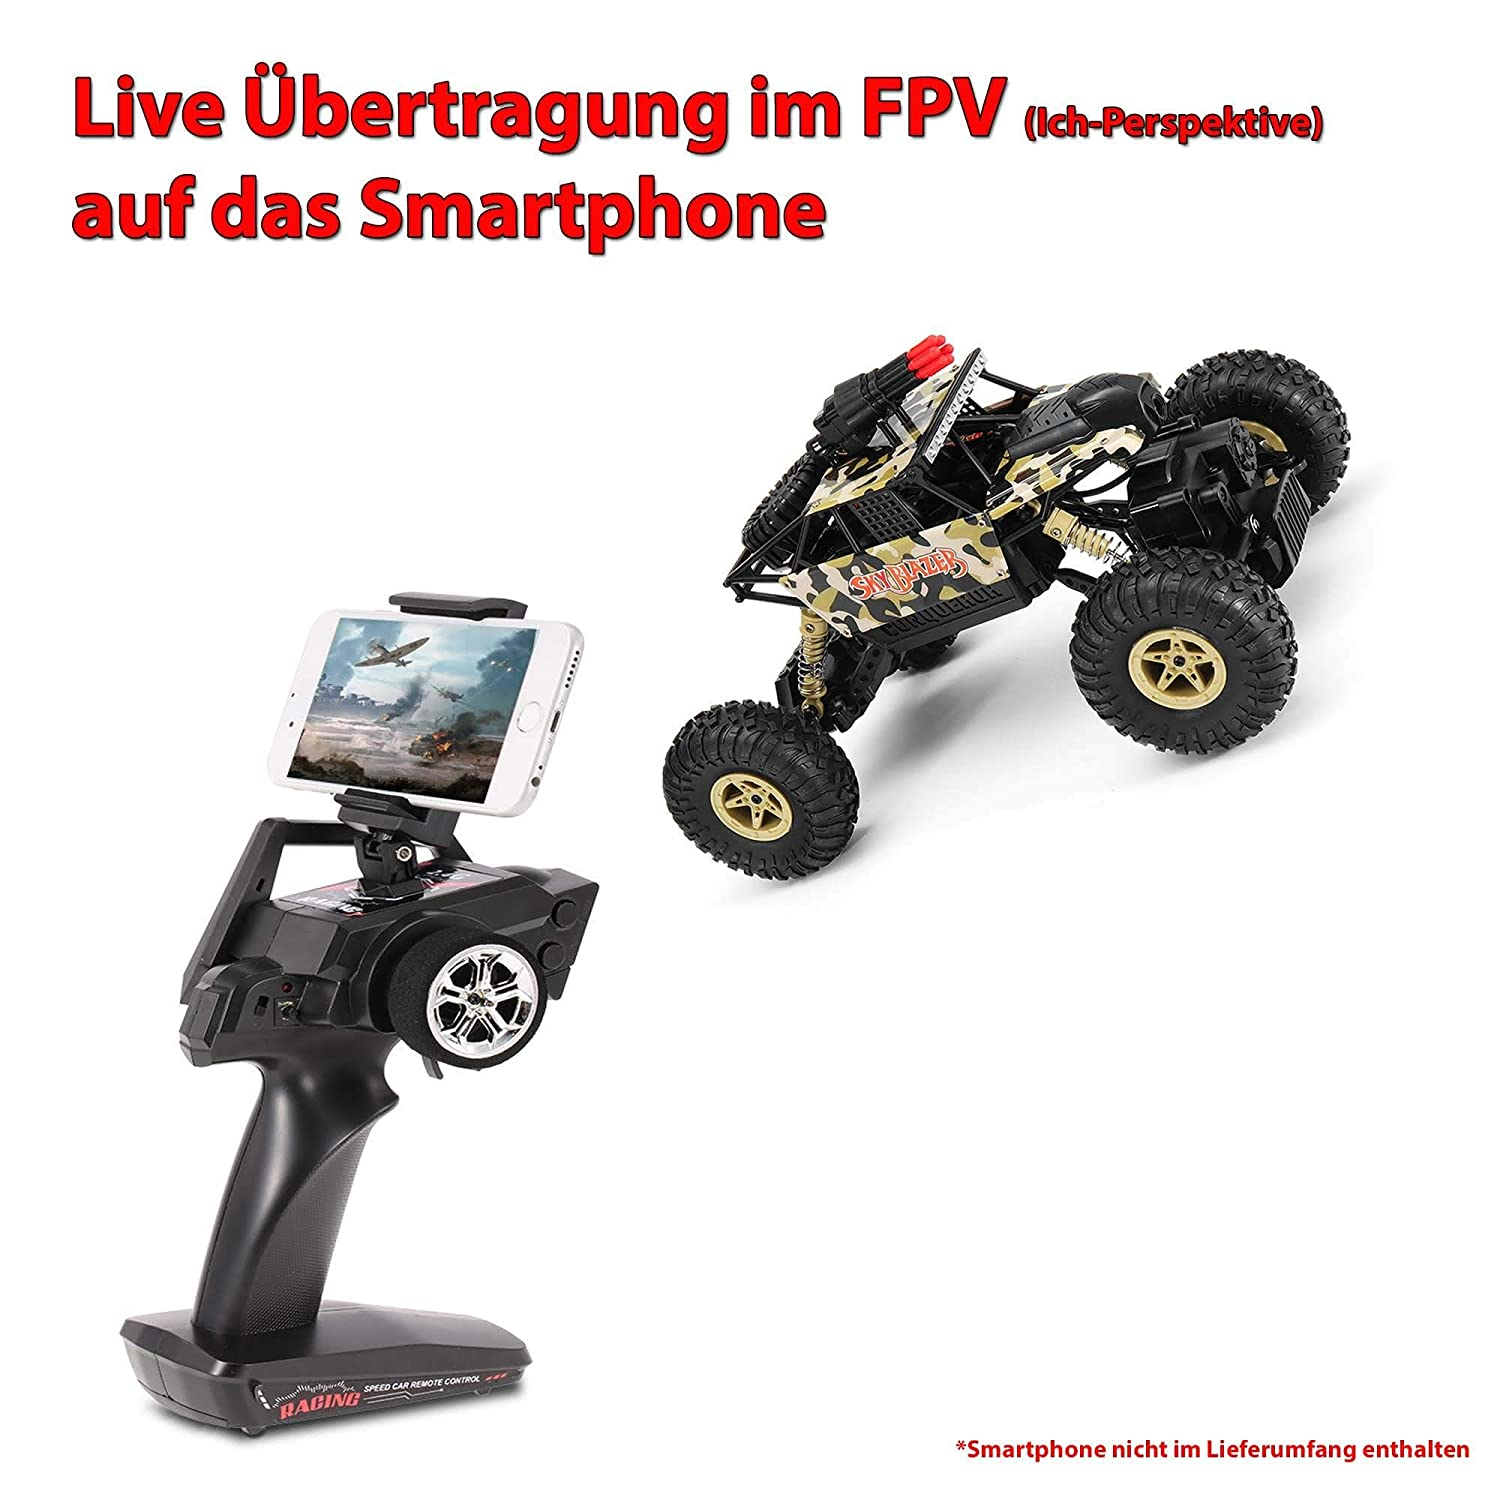 Complete Set HSP Himoto 1:18 2.4GHz RC Remote Controlled Off Road Crawler Built-in FPV WiFi Camera with Live Transmission to Smartphone Shooting Function Climbing Vehicle Terrain Vehicle